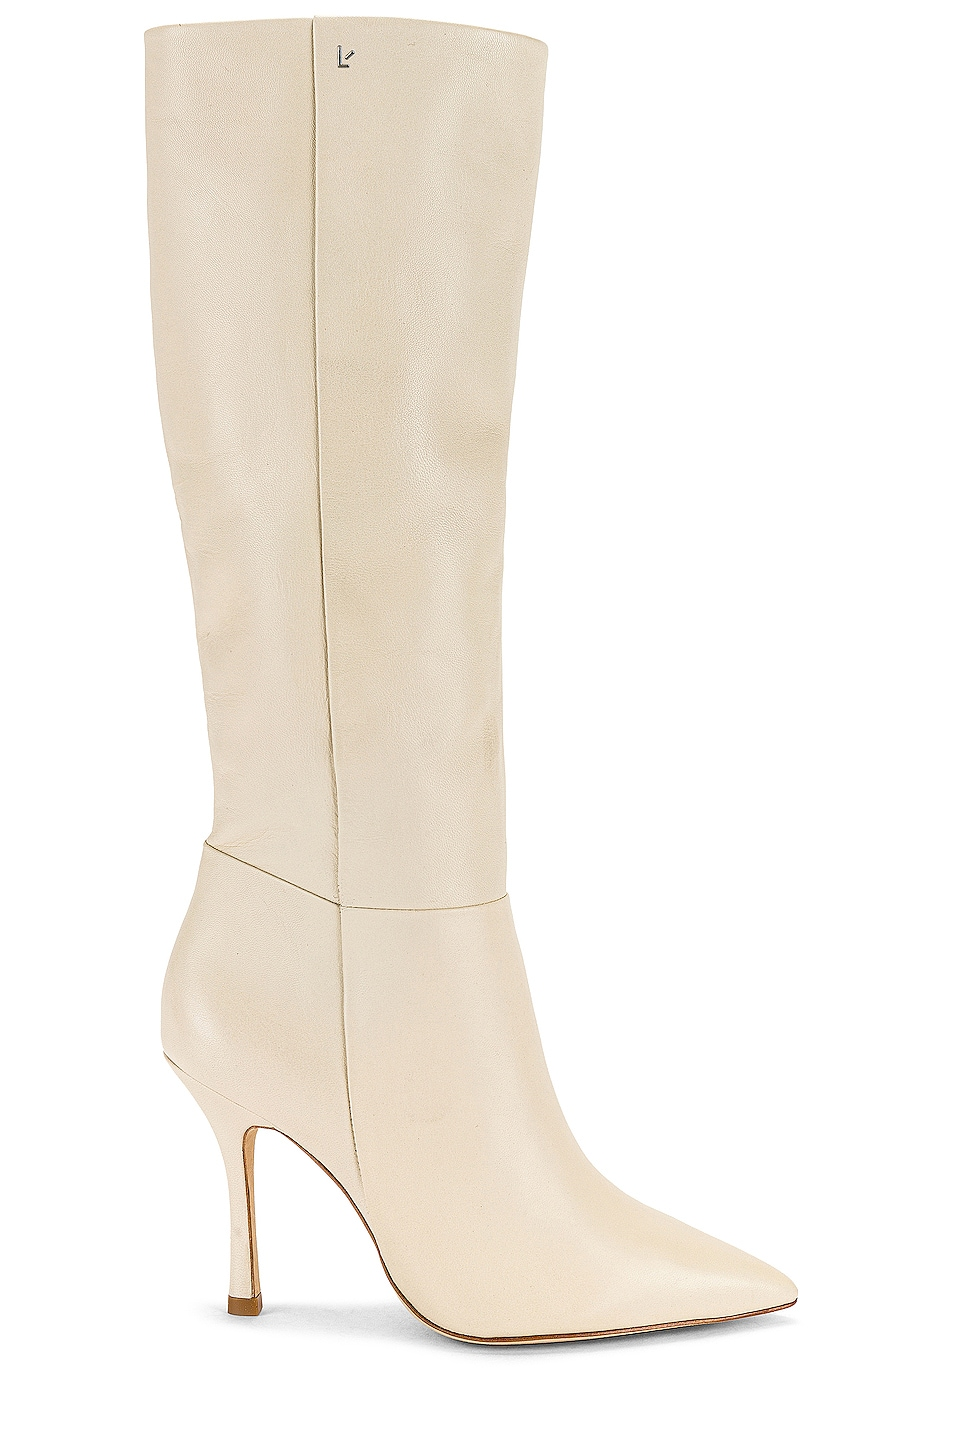 Larroude The Kate Boot in Ivory